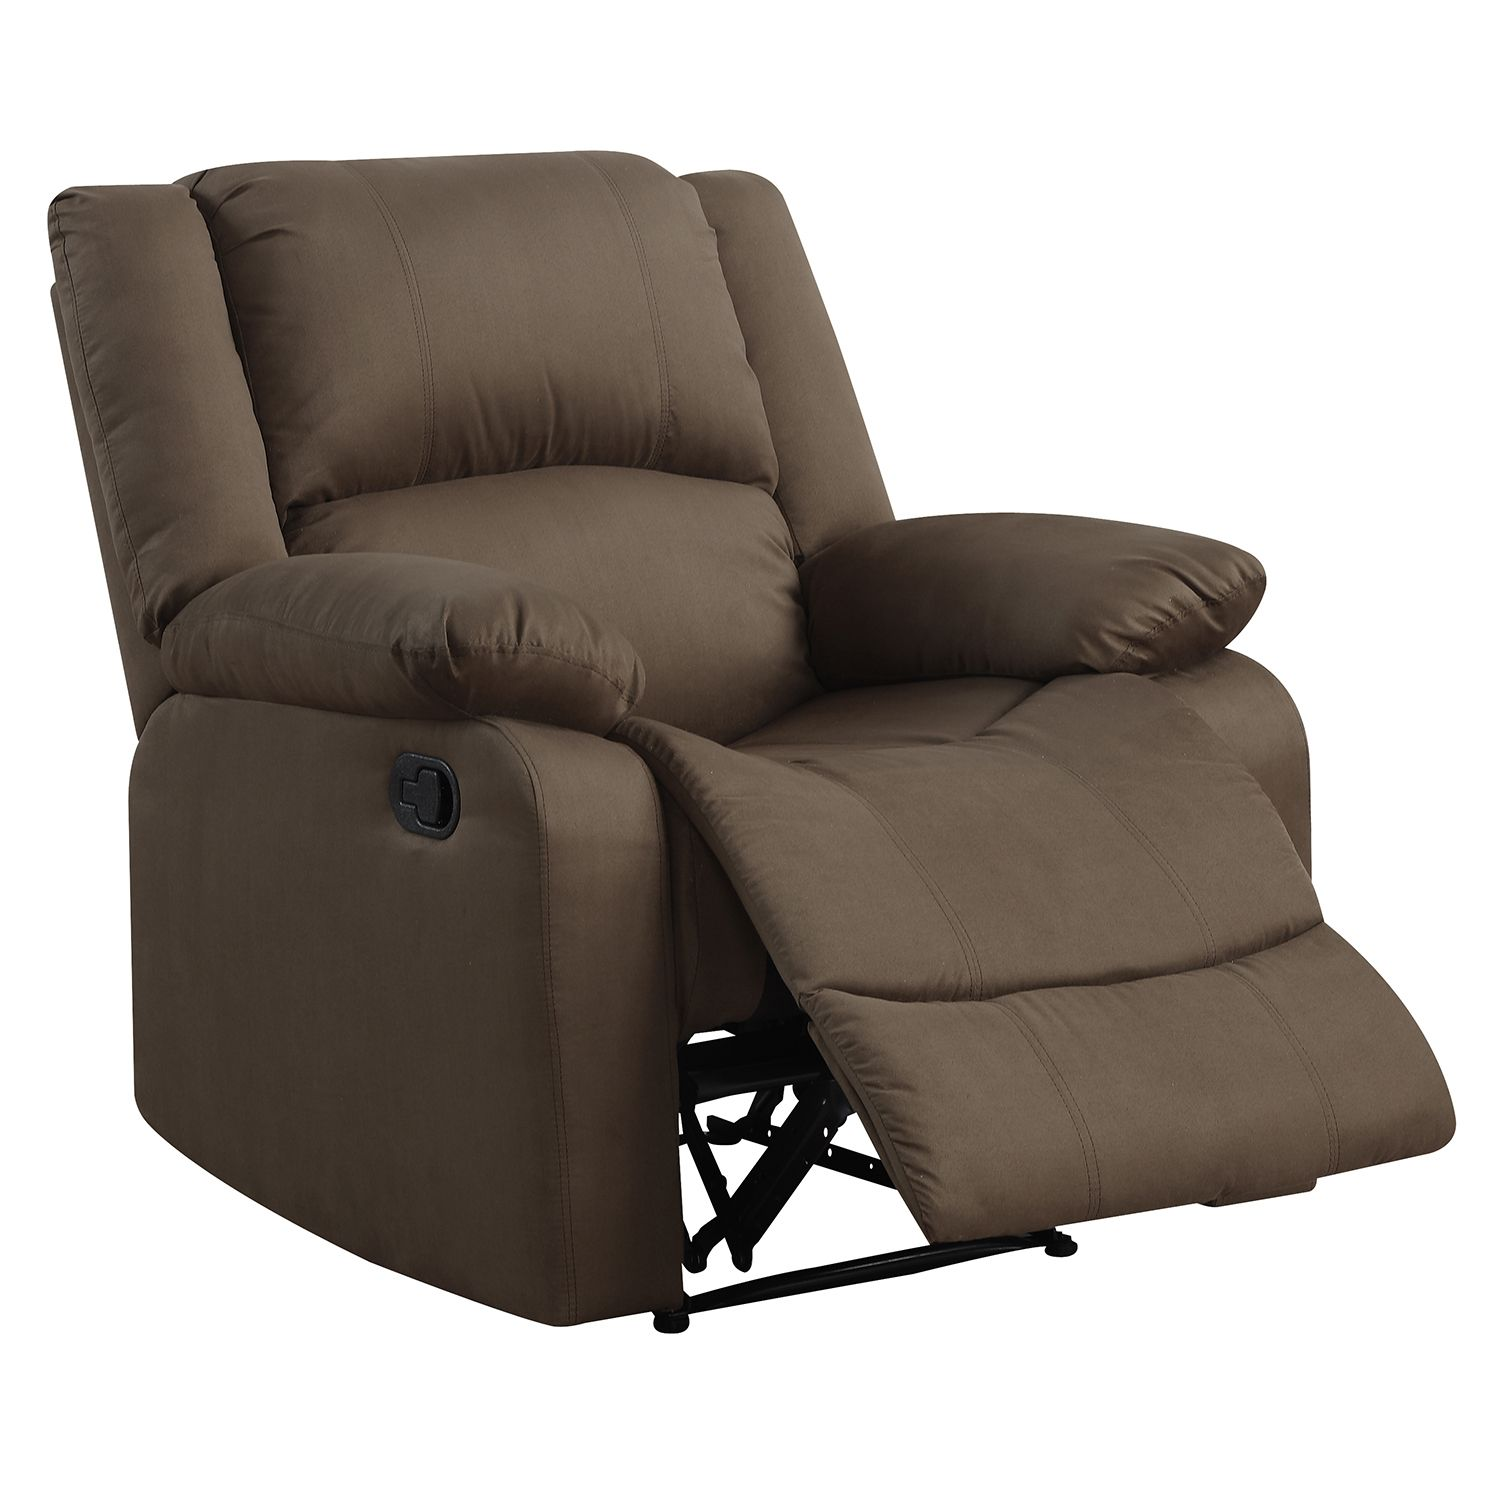 Recliner Chairs Furniture